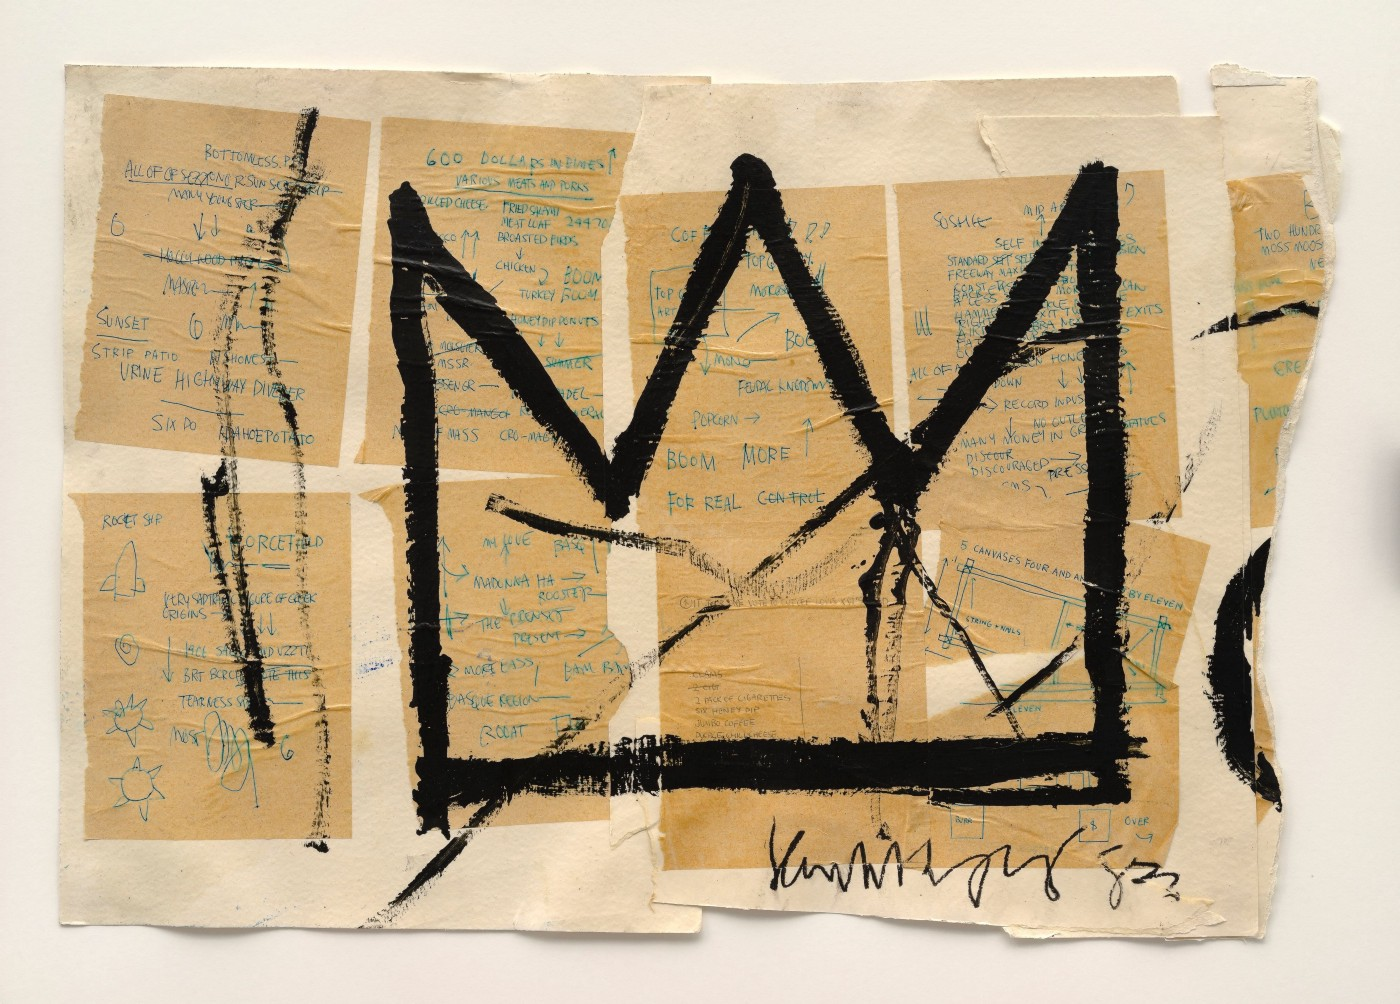 Sketch of a black crown by the artist Basquiat with old pieces of paper attached behind it